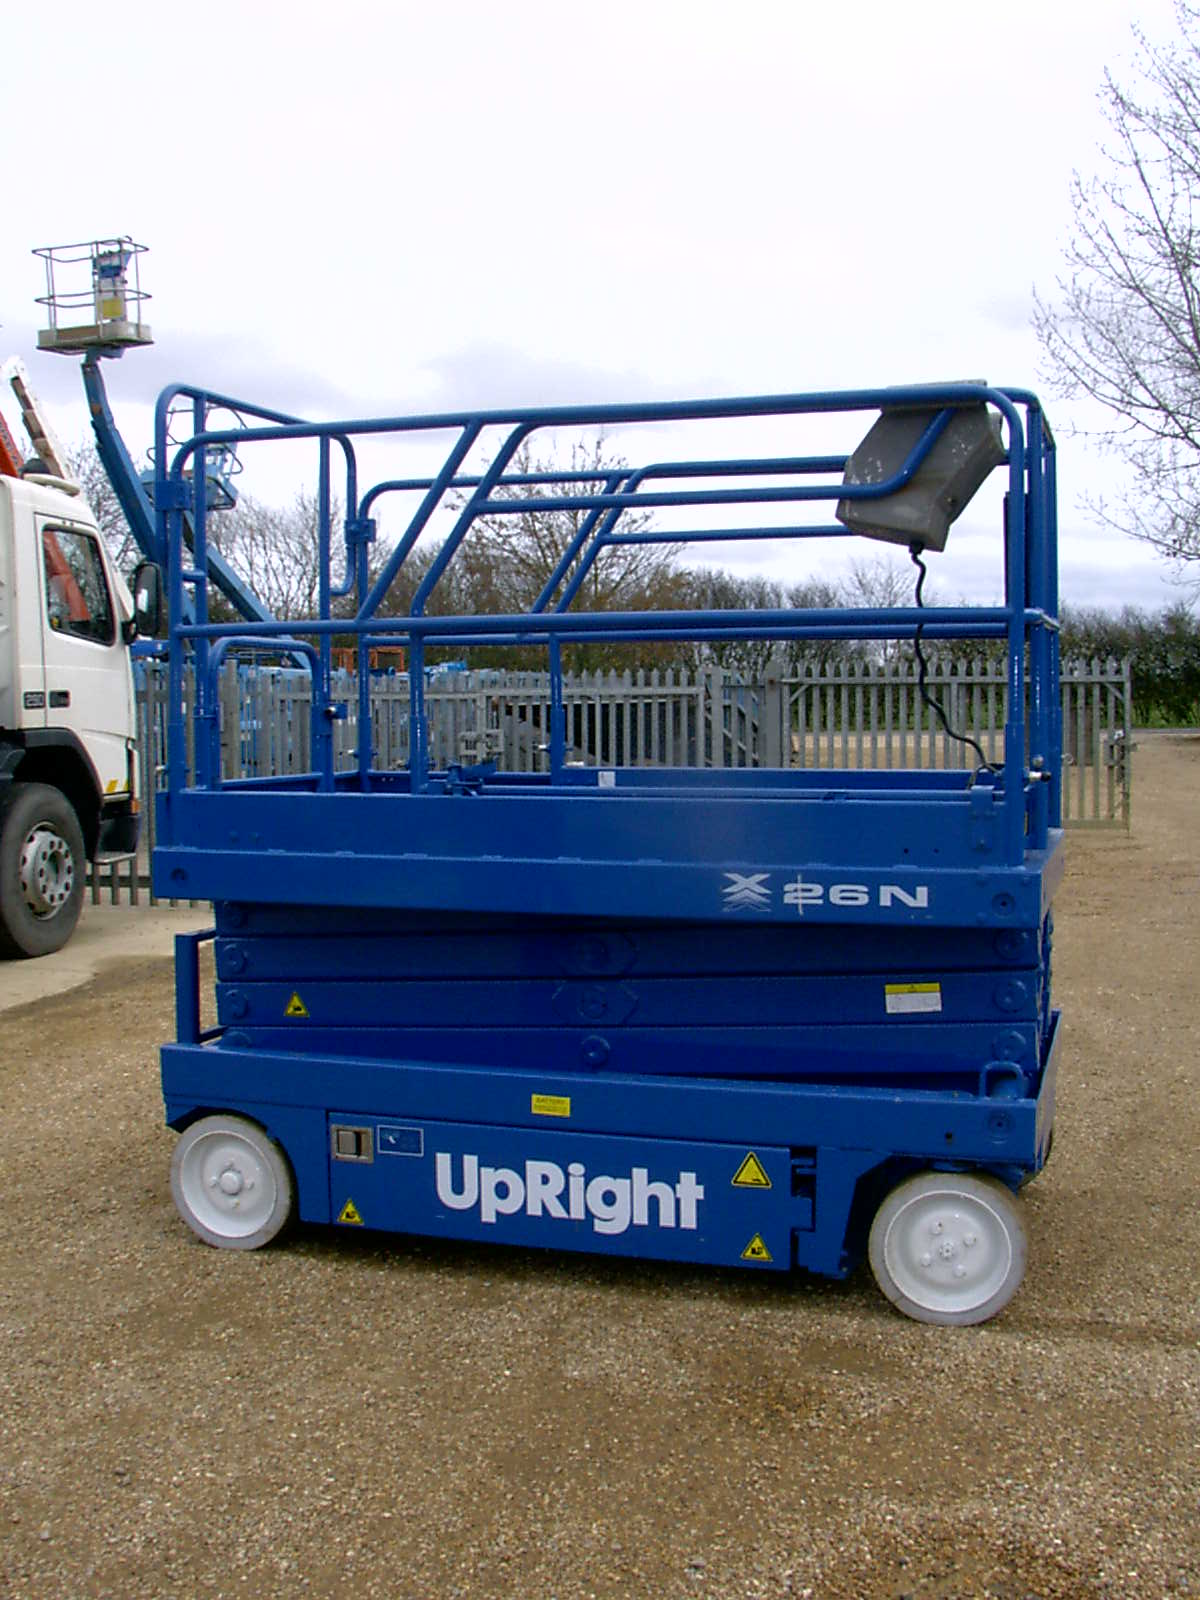 upright x26n scissor lift parts manual